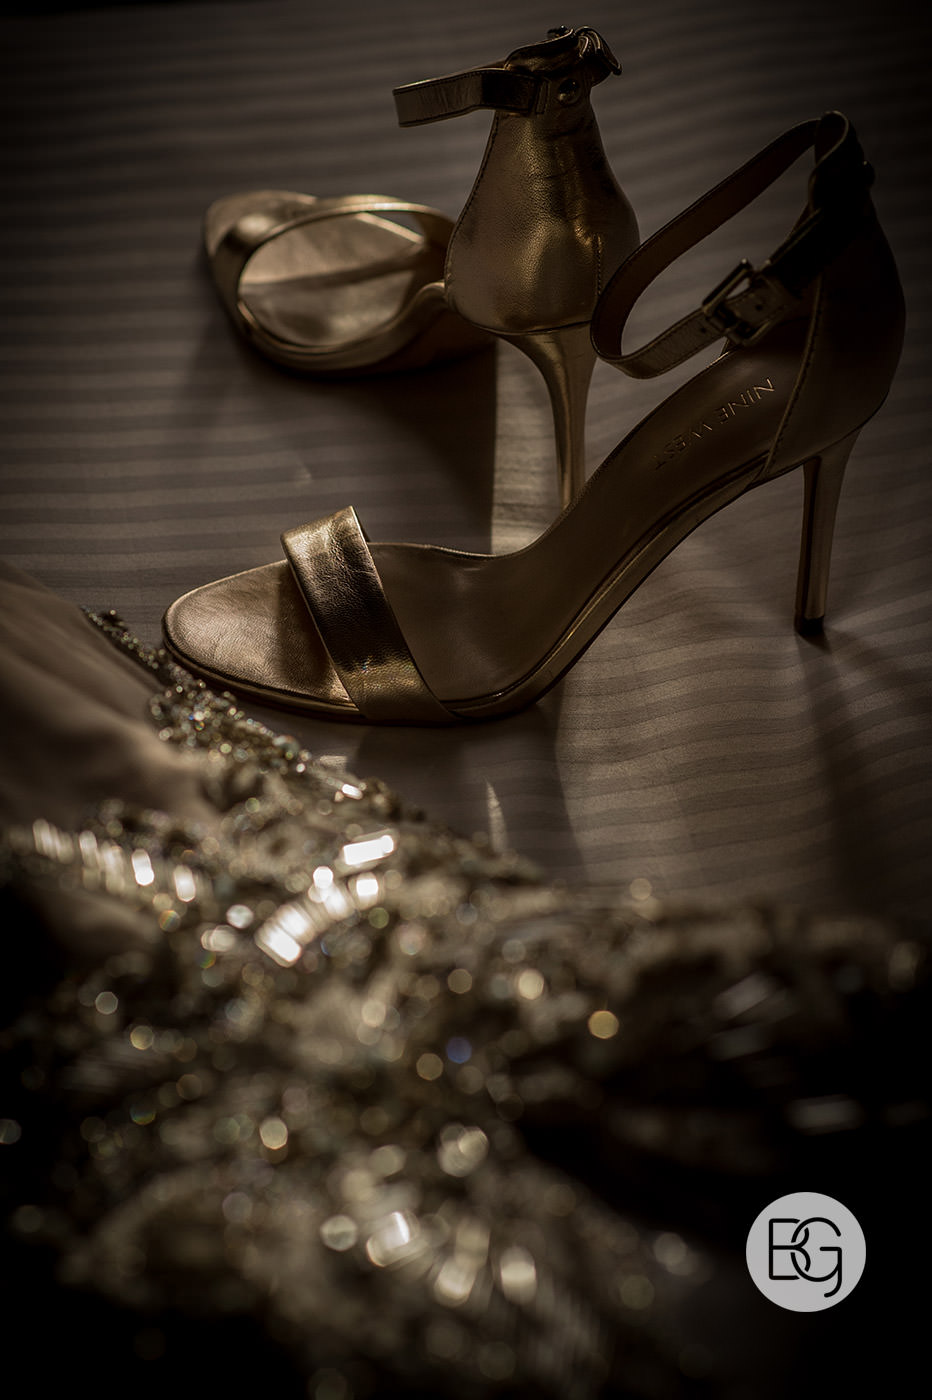 Best edmonton photographers for weddings details gold shoes bride